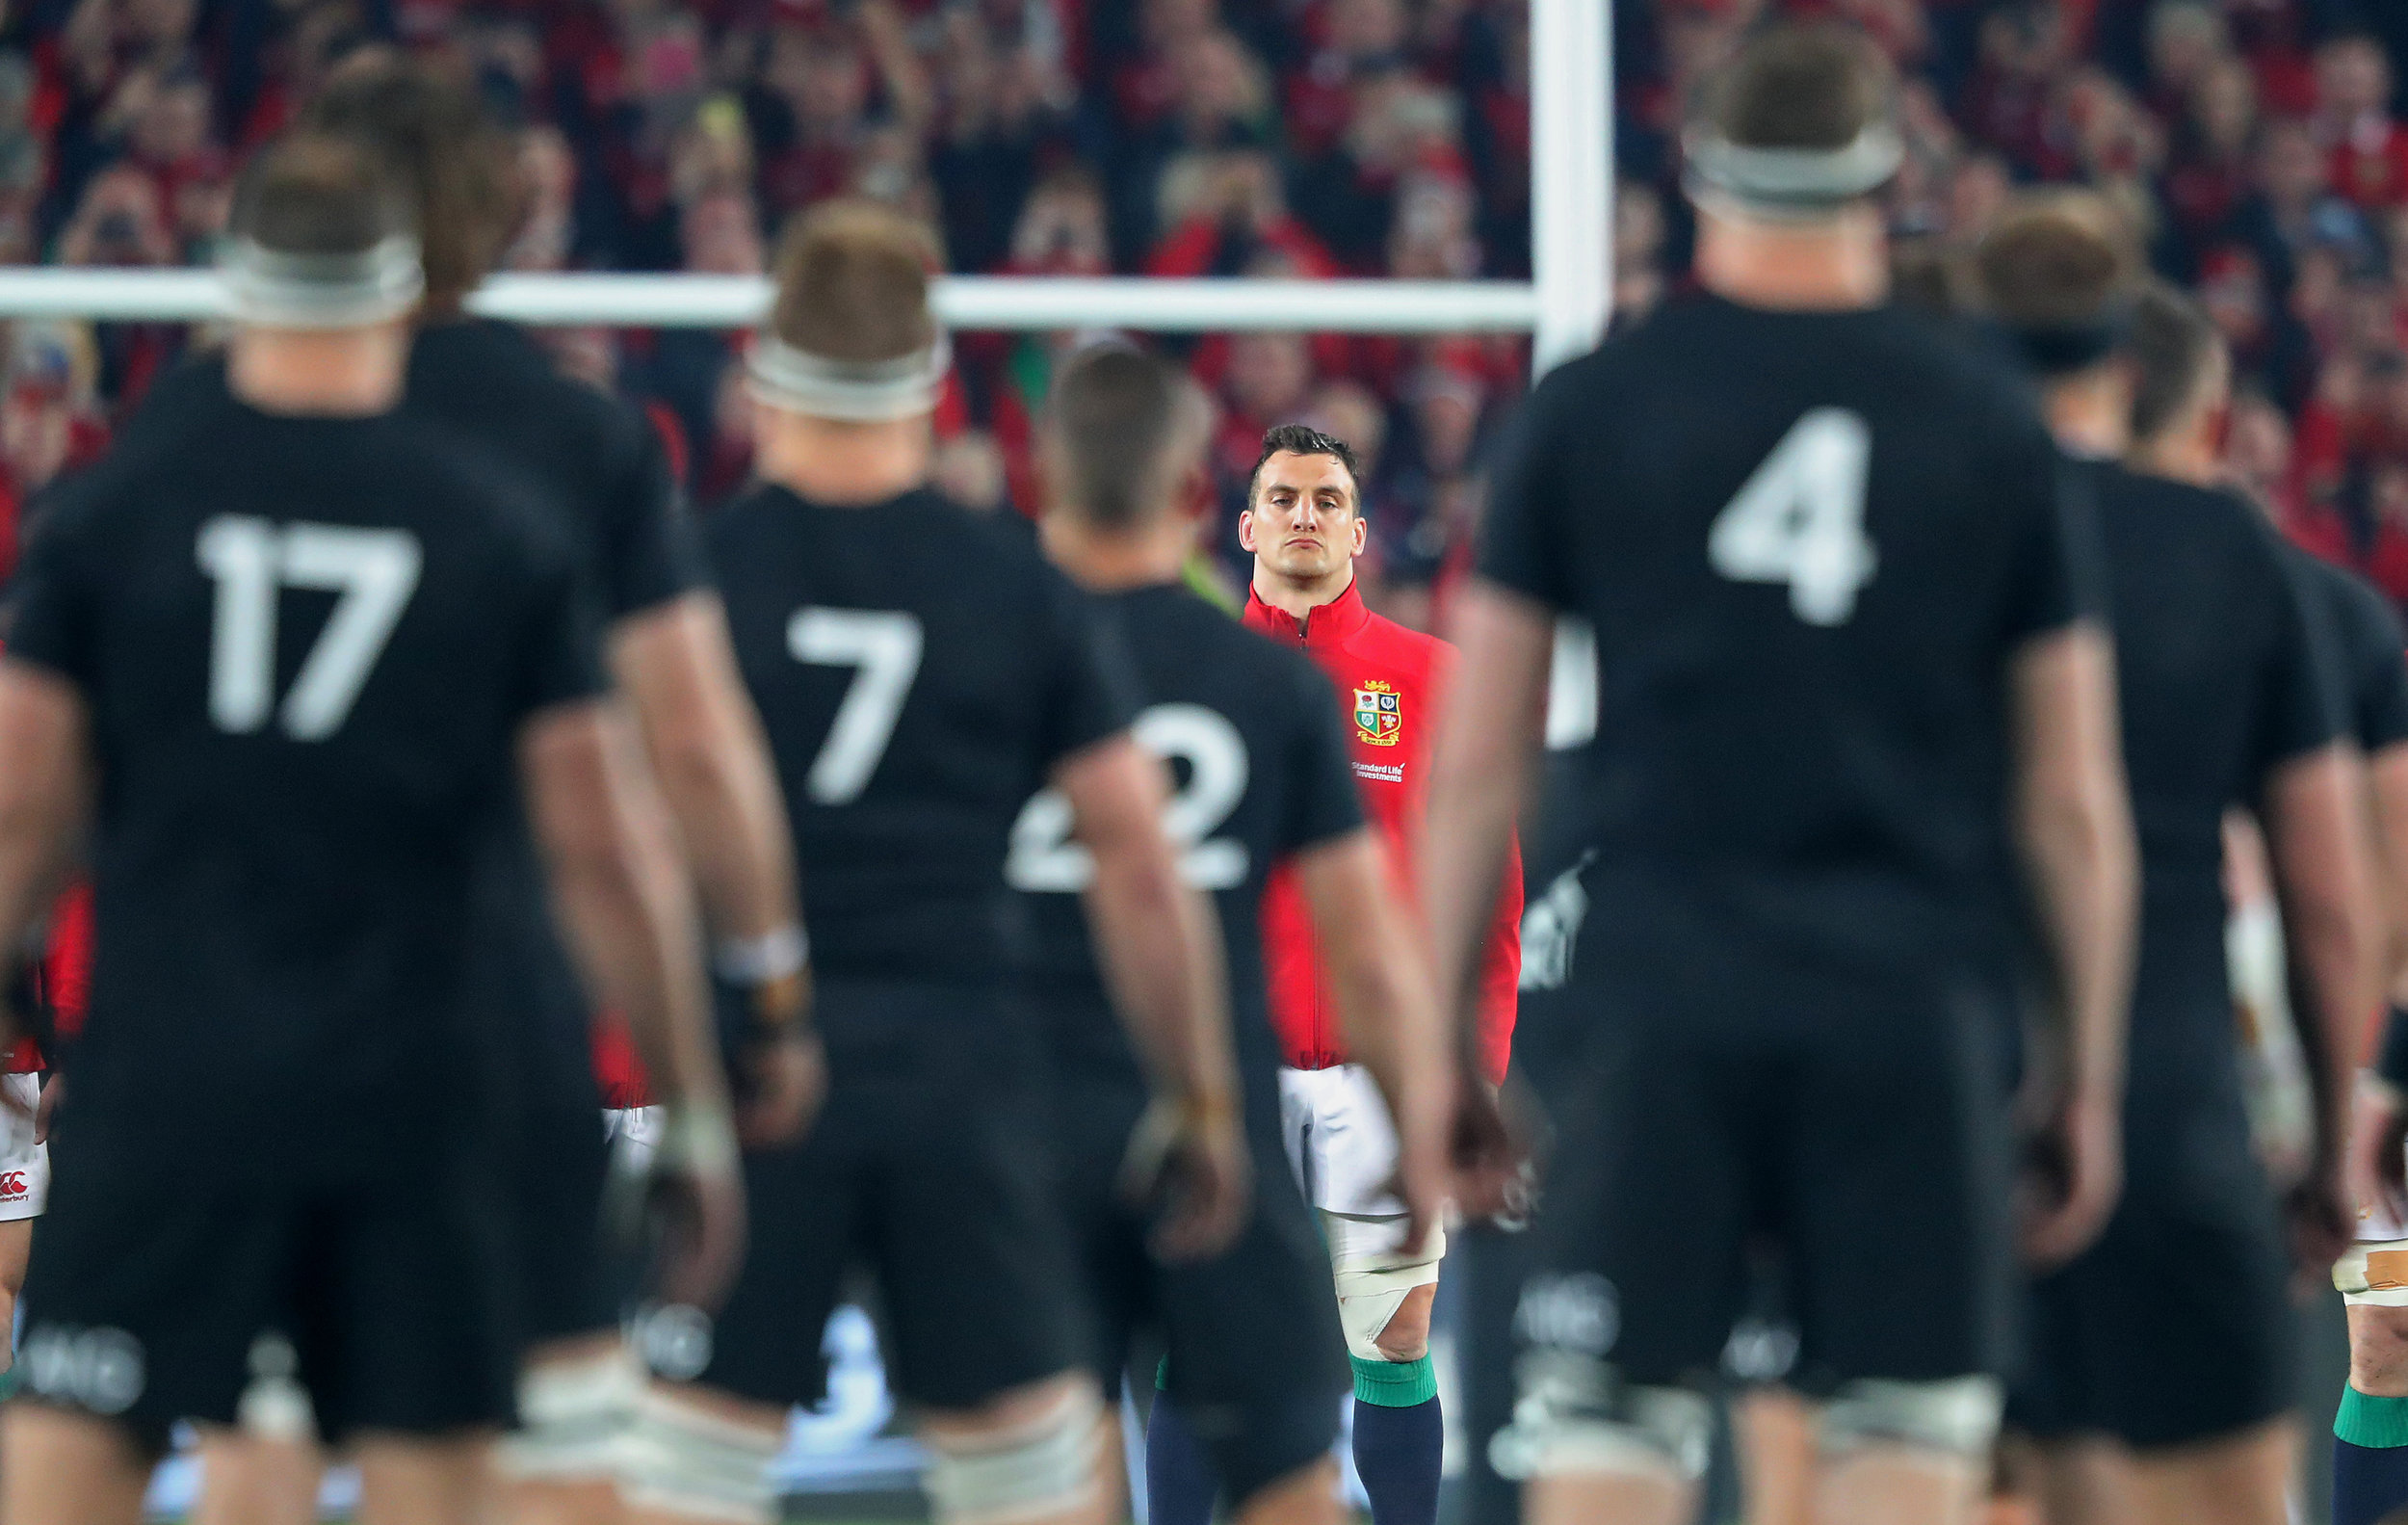 The British & Irish Lions captain Sam Warburton stares down the New Zealand All Blacks, during their traditional pre-match Haka at Eden Park Stadium, Auckland, before the deciding third Test match.Photo by Marc Aspland  08 July 2017